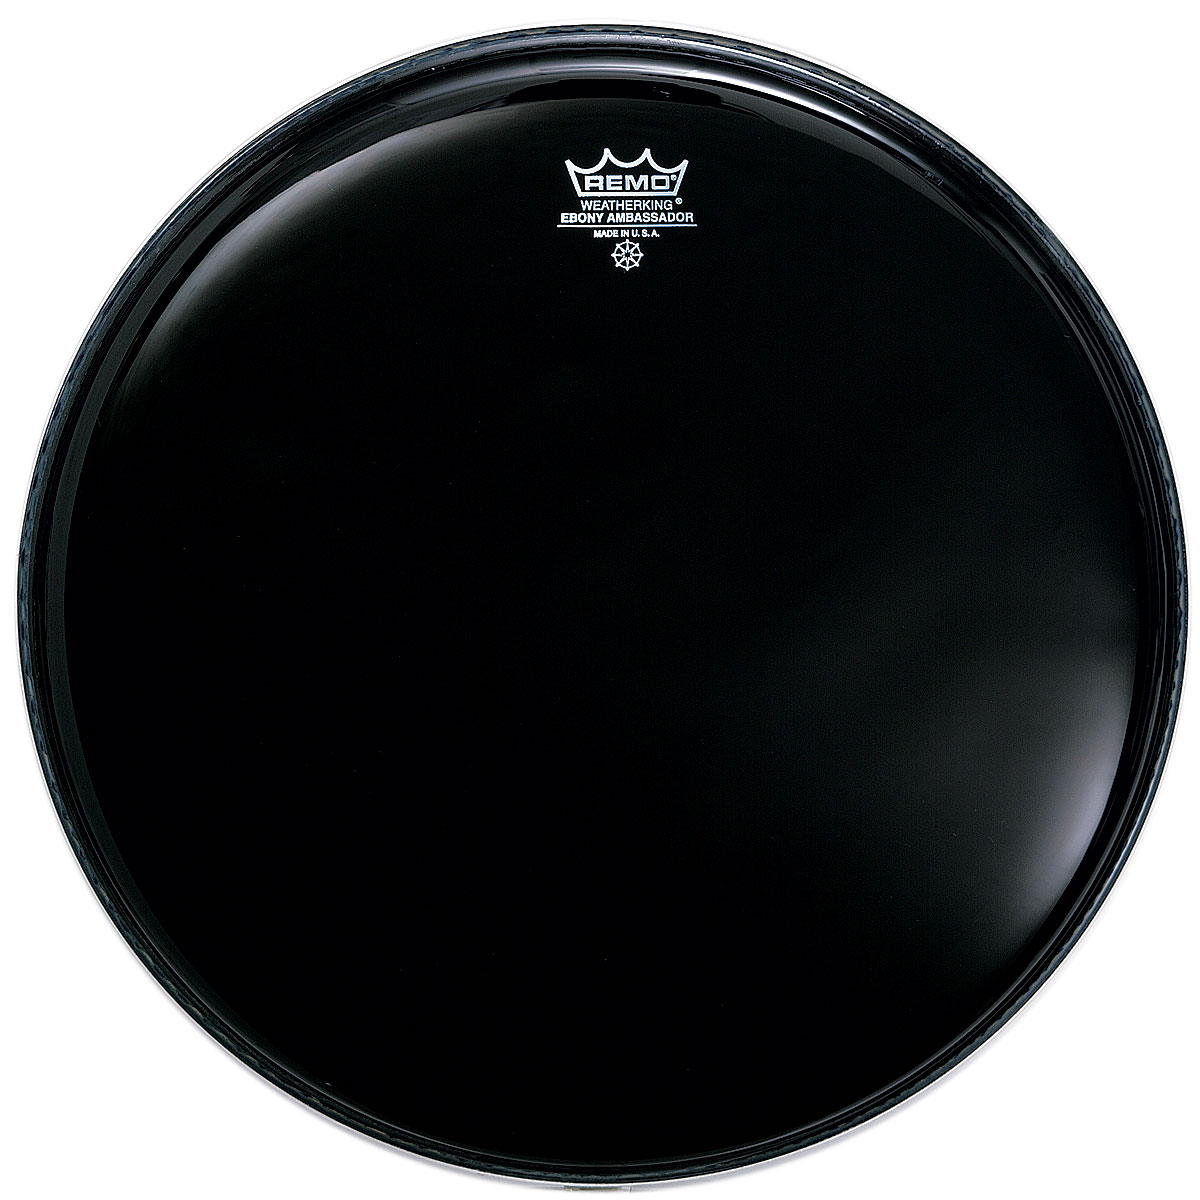 "Remo 16"" Ambassador Ebony Drum Head"